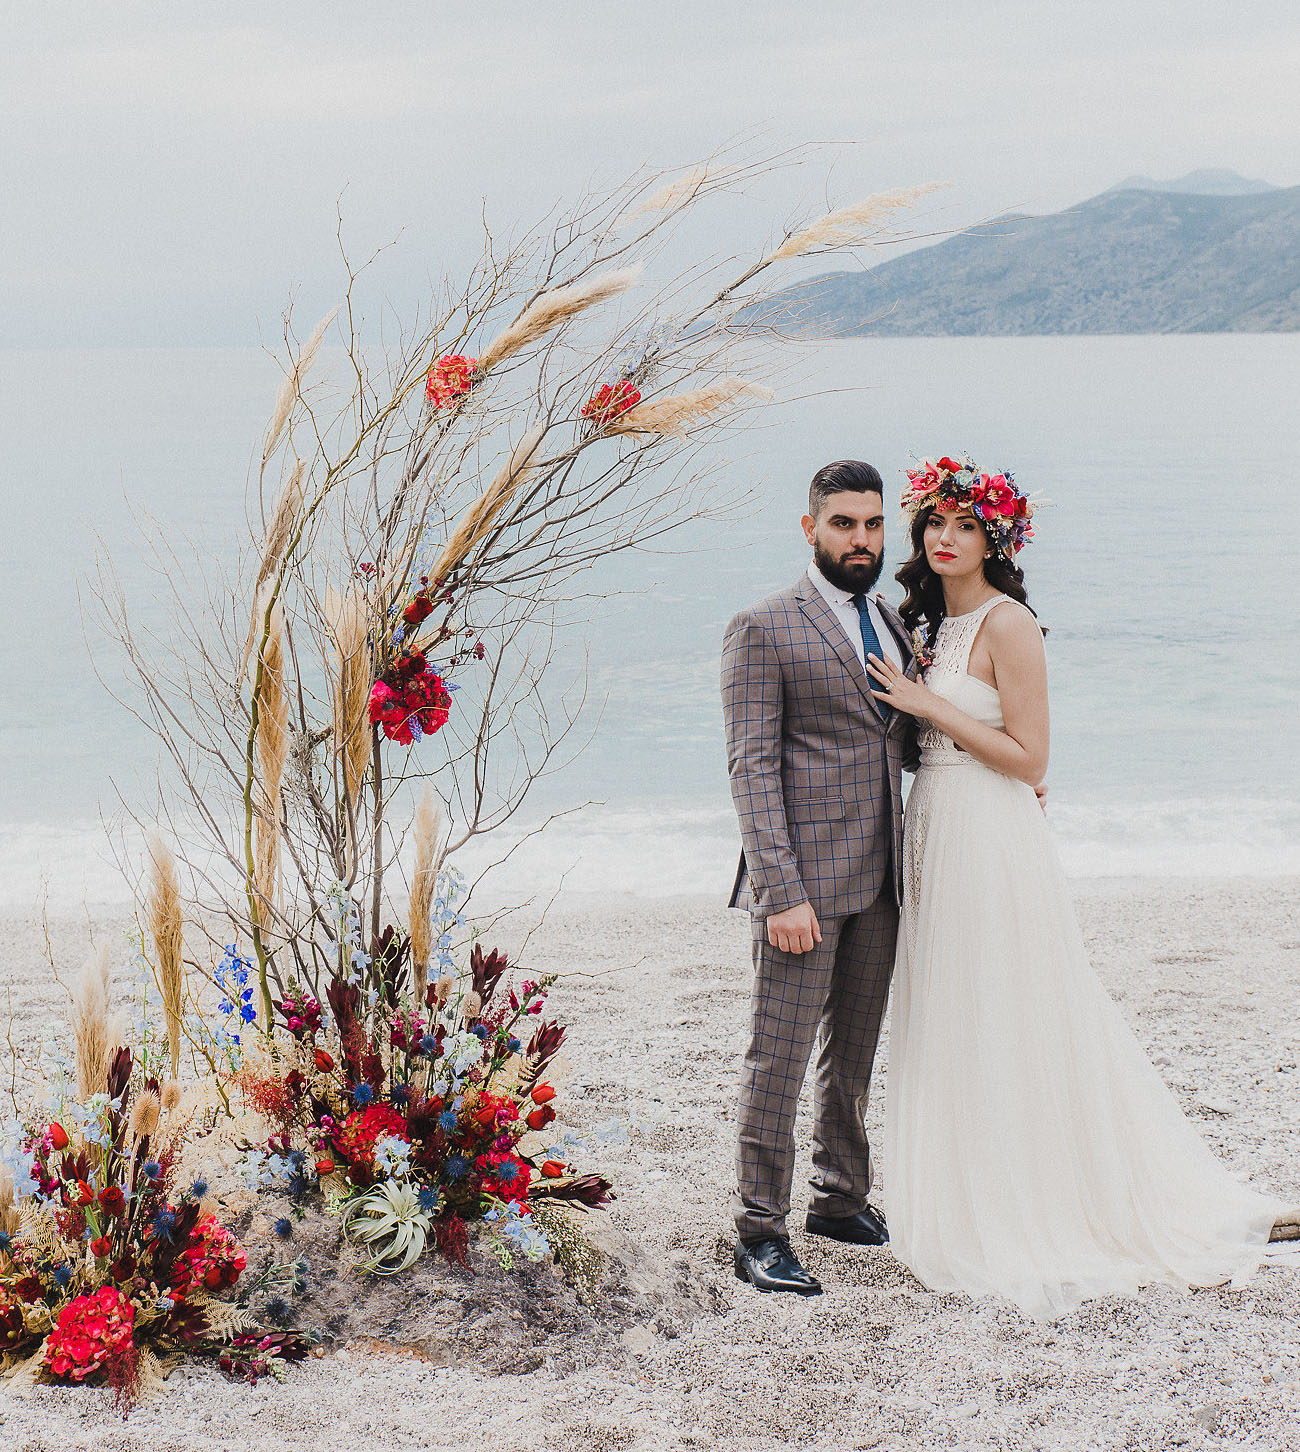 The groom was wearing a brown suit with a windowpane print and a blue tie